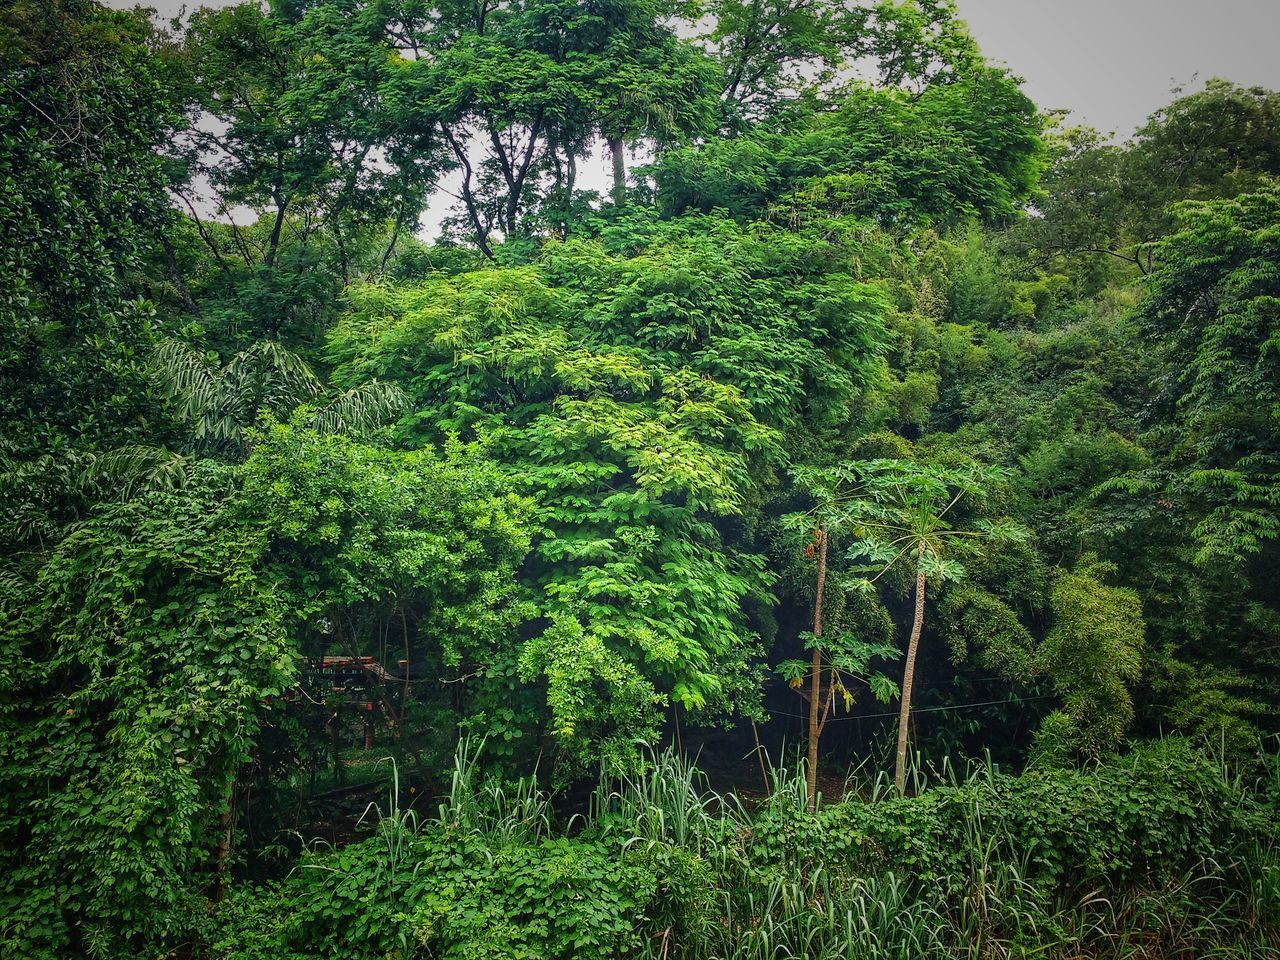 Growth Green Color Nature No People Tree Beauty In Nature Tranquility Day Outdoors South America Freshness Rainforest National Park Tropical Forest Jungle Travel Destinations Tranquil Scene Latin America Backgrounds Leaves Mountain Landscape Tourist Destination Flora